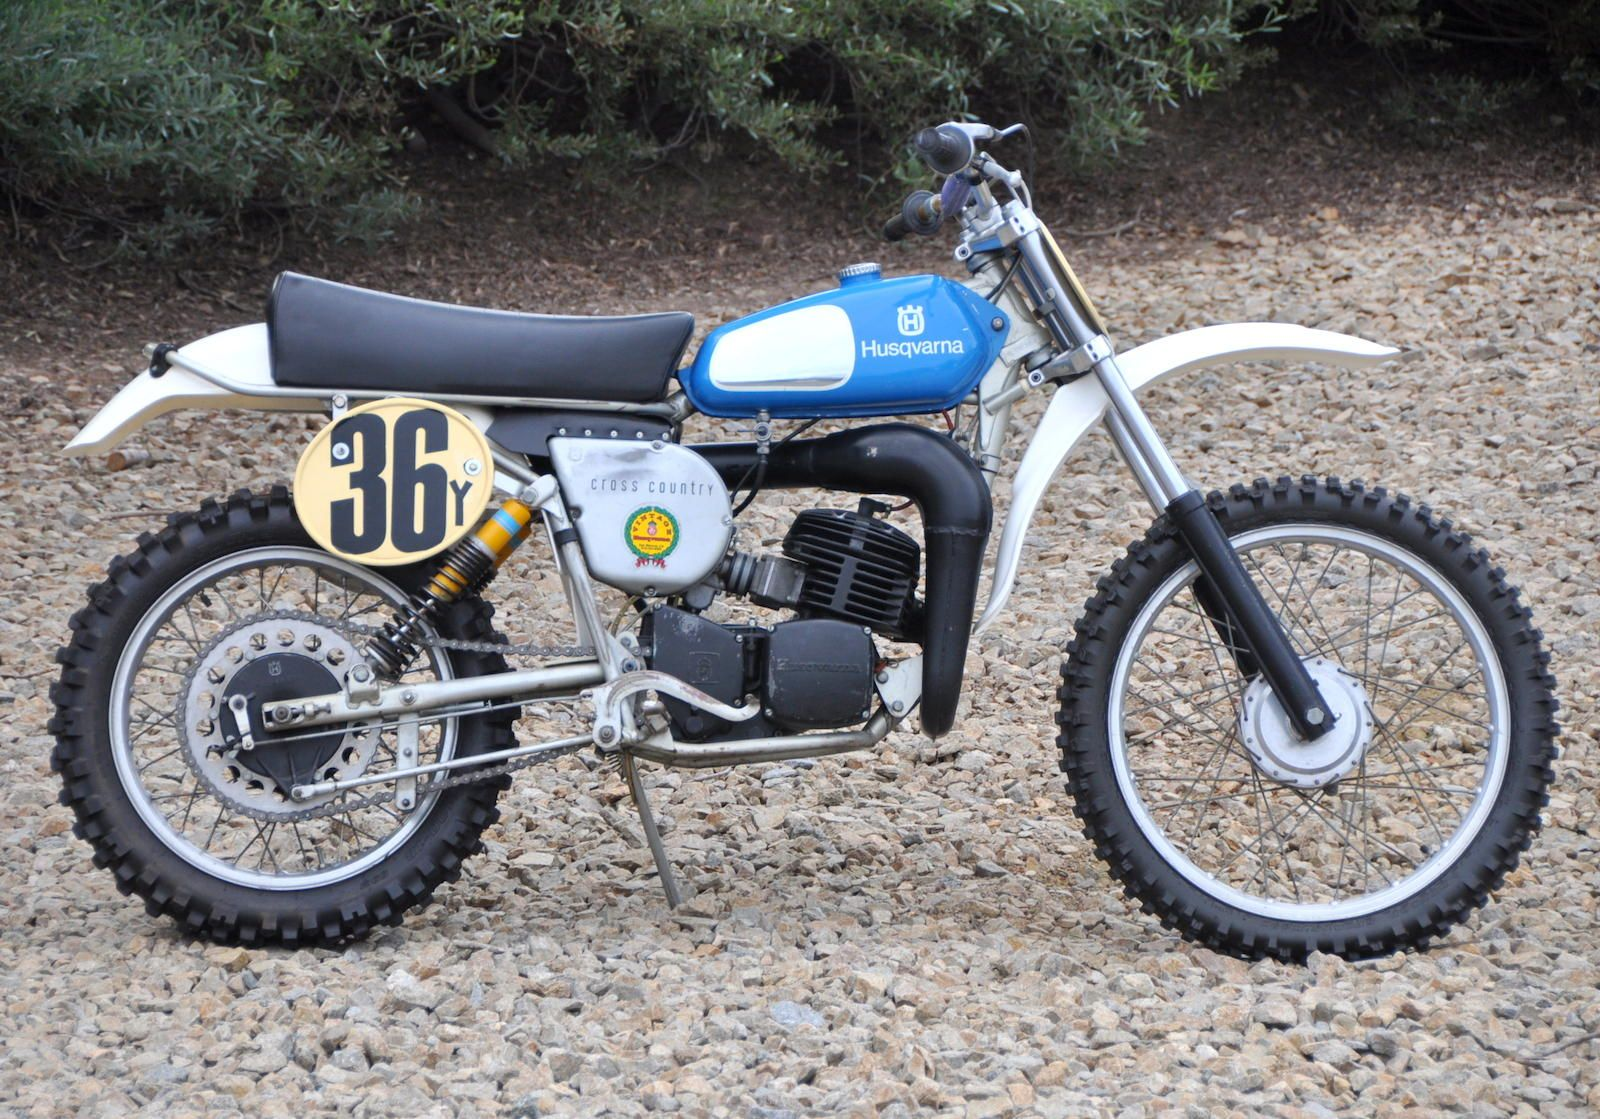 1976 Husqvarna 175cc Gp Cross Country Motorcross Bike Vintage Motocross Enduro Motorcycle